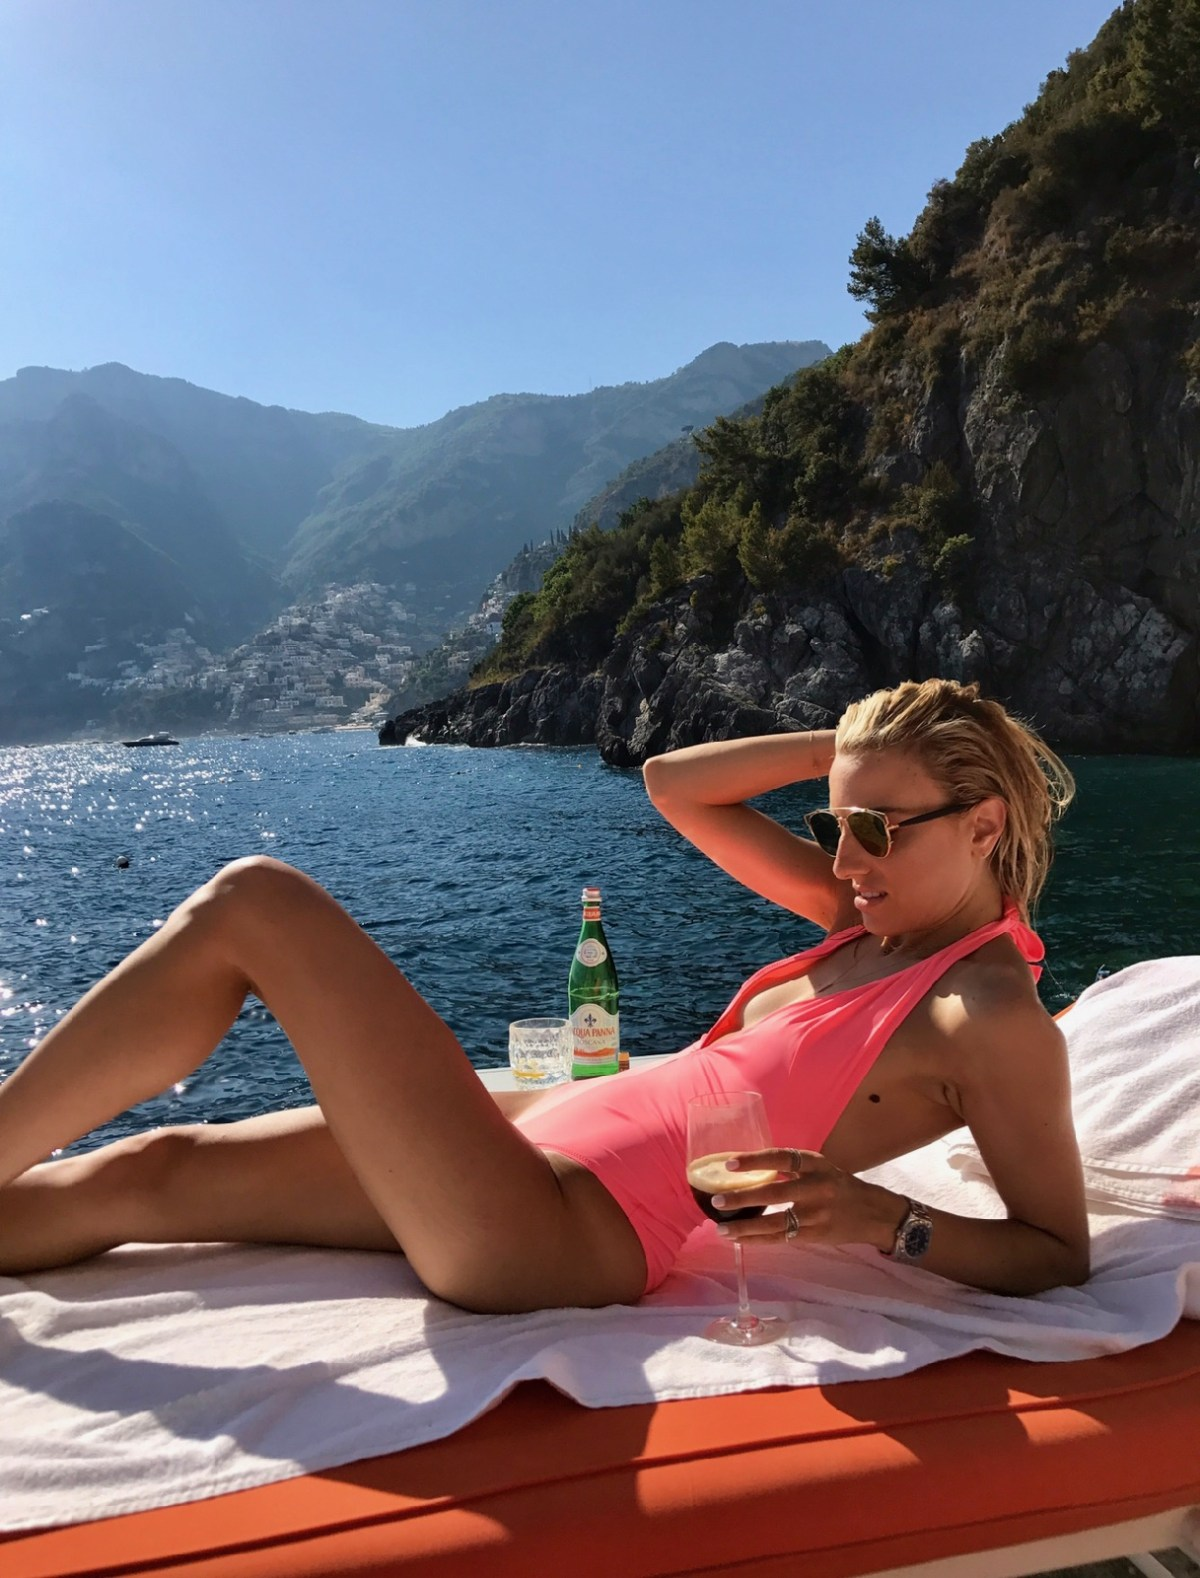 Positano Travel Guide, Beach clubs in Europe, One piece swimsuit in Positano, Top 10 things to do in Positano